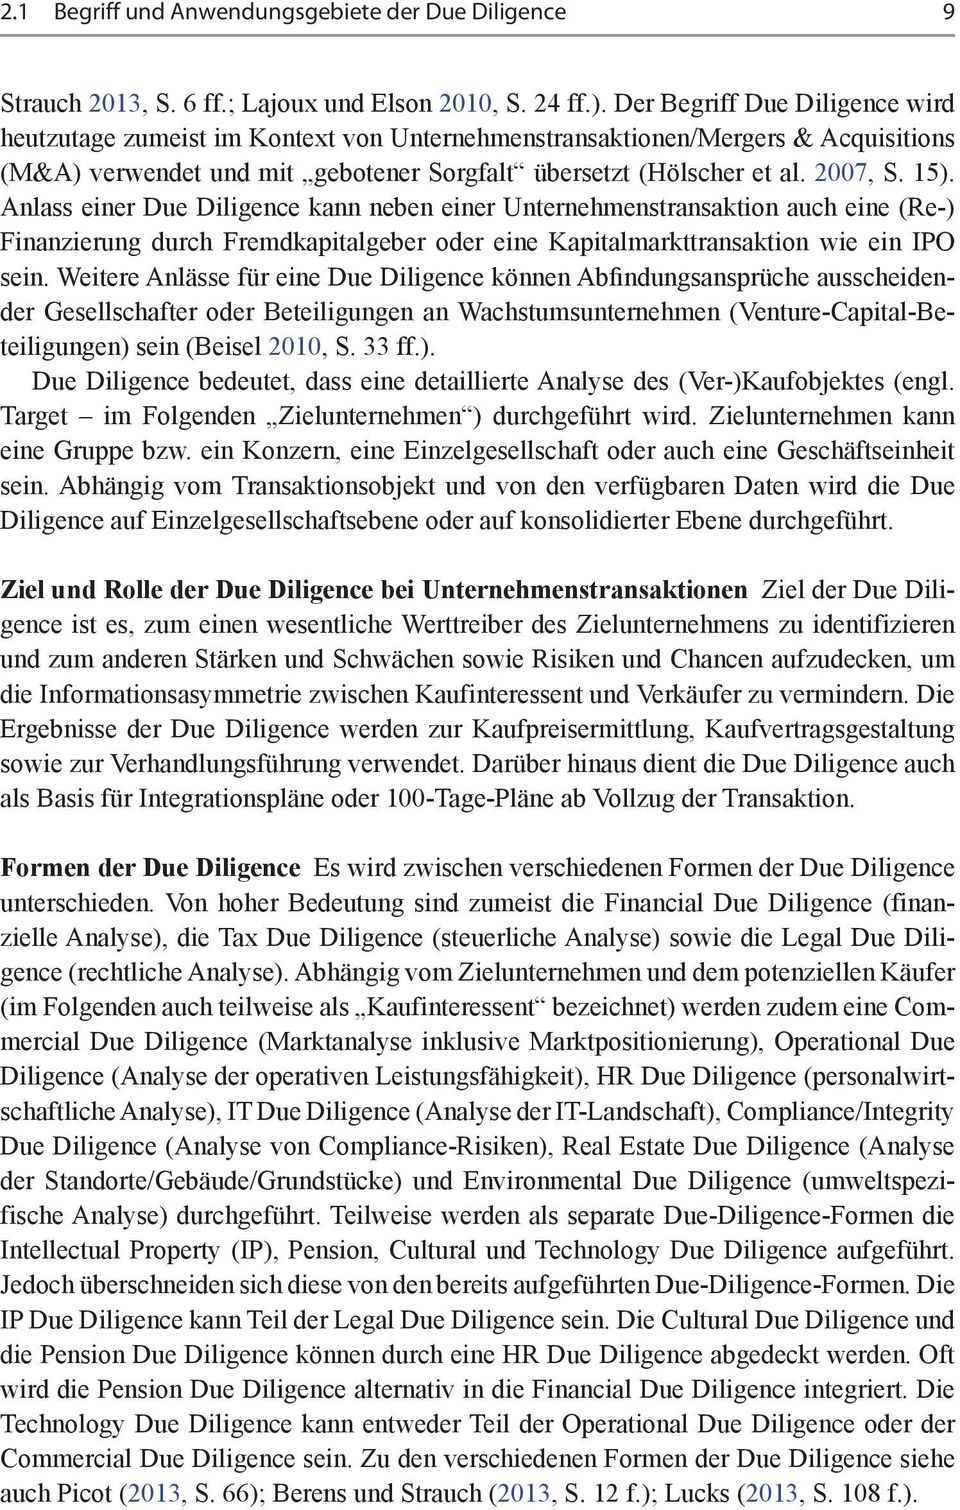 it due diligence guide pdf